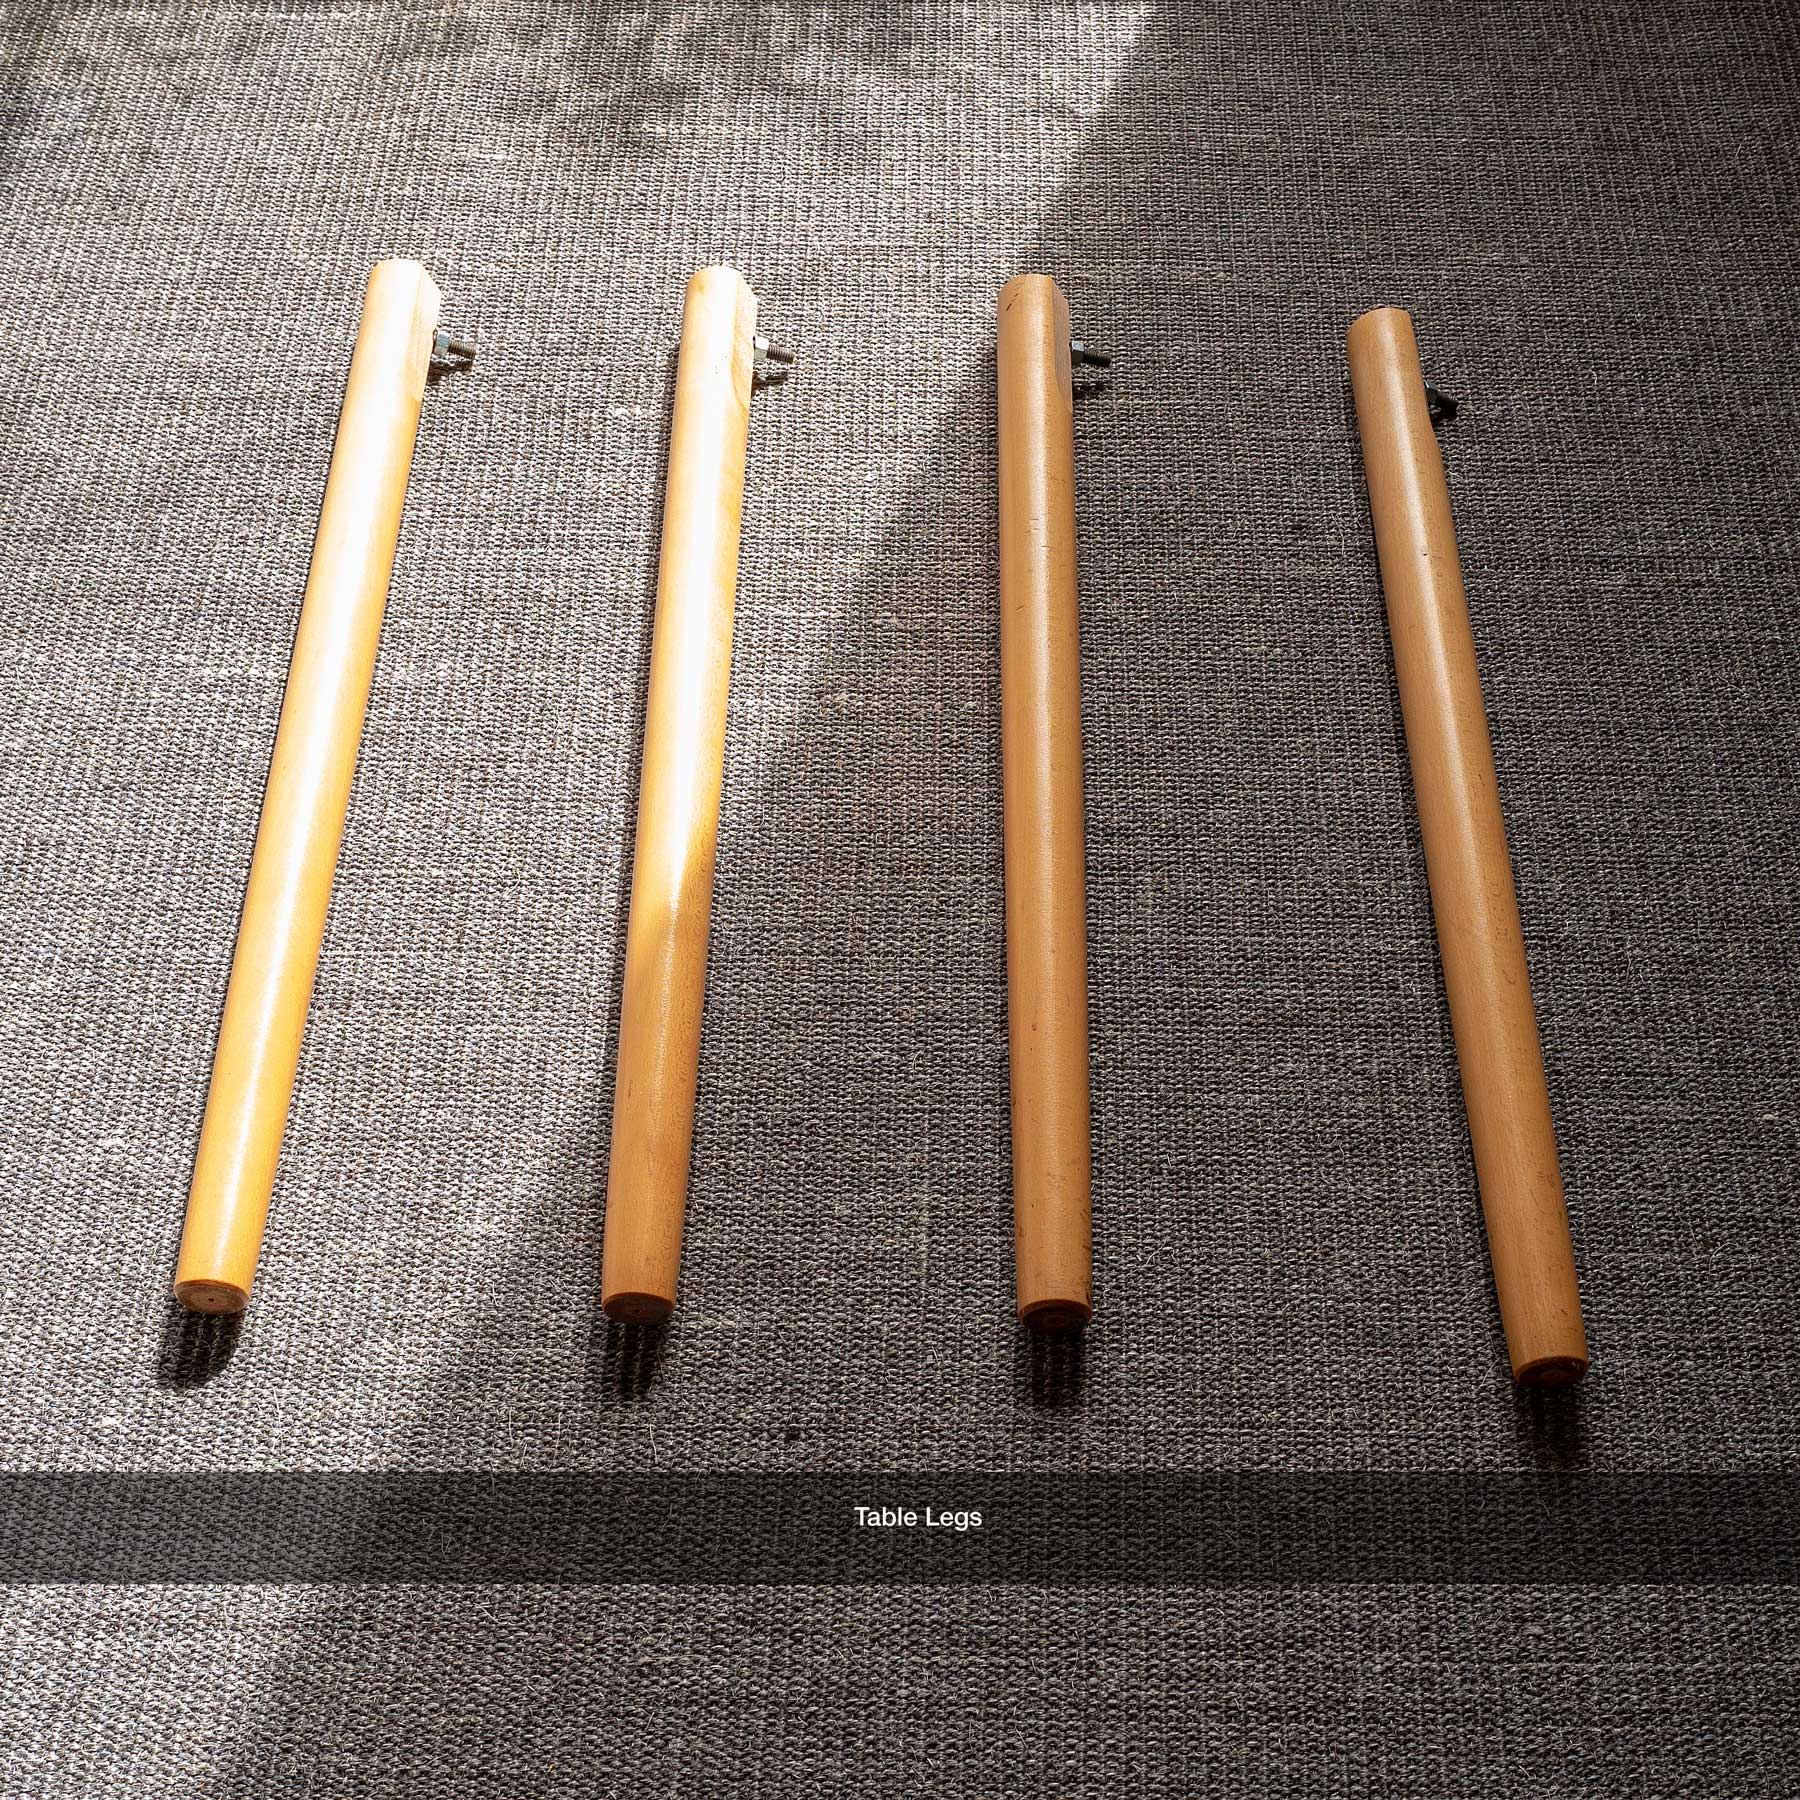 Table legs (disassembled)  (click to enlarge)